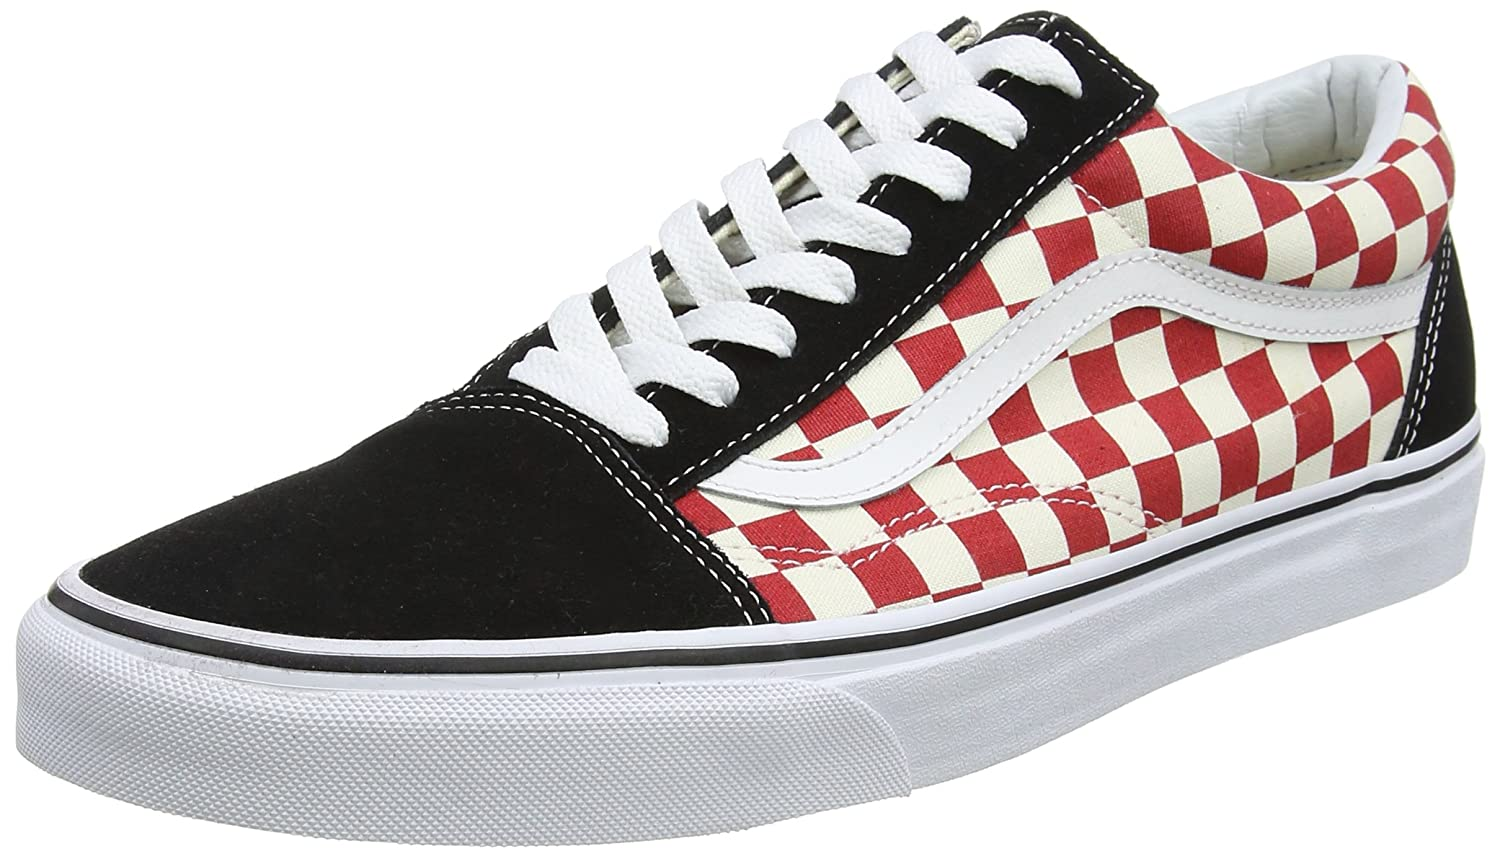 8a5e2970114e Vans Old Skool Unisex Adults  Low-Top Low-Top Low-Top Trainers B075FWXFRM  10.5 B(M) US Women   9 D(M) US Men